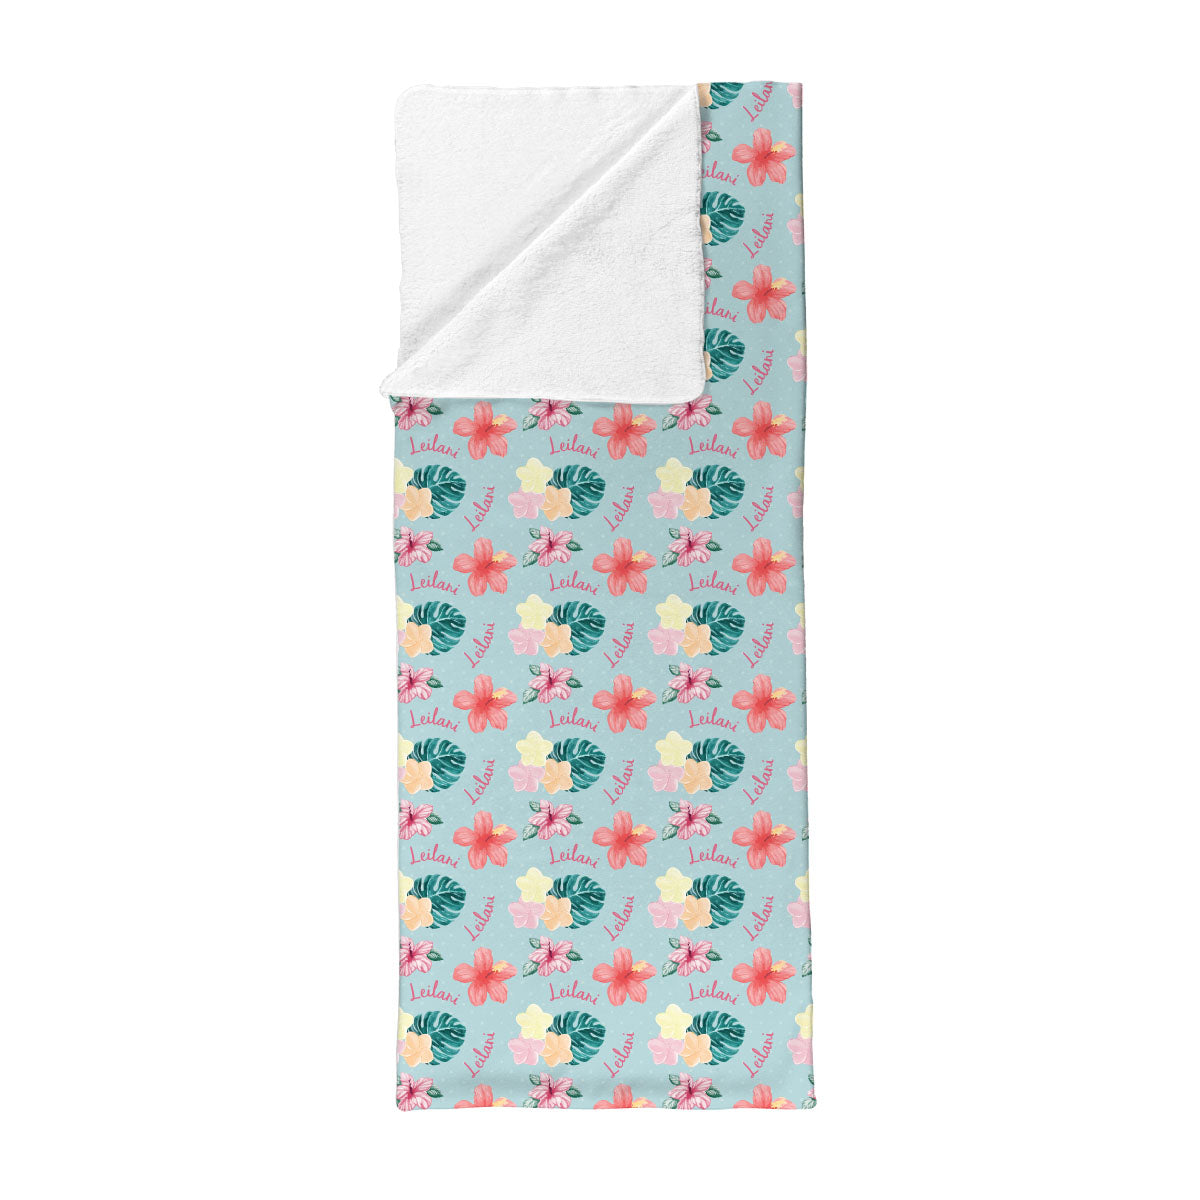 Leilani's Hawaiian Floral | Big Kid Sleepover Sack